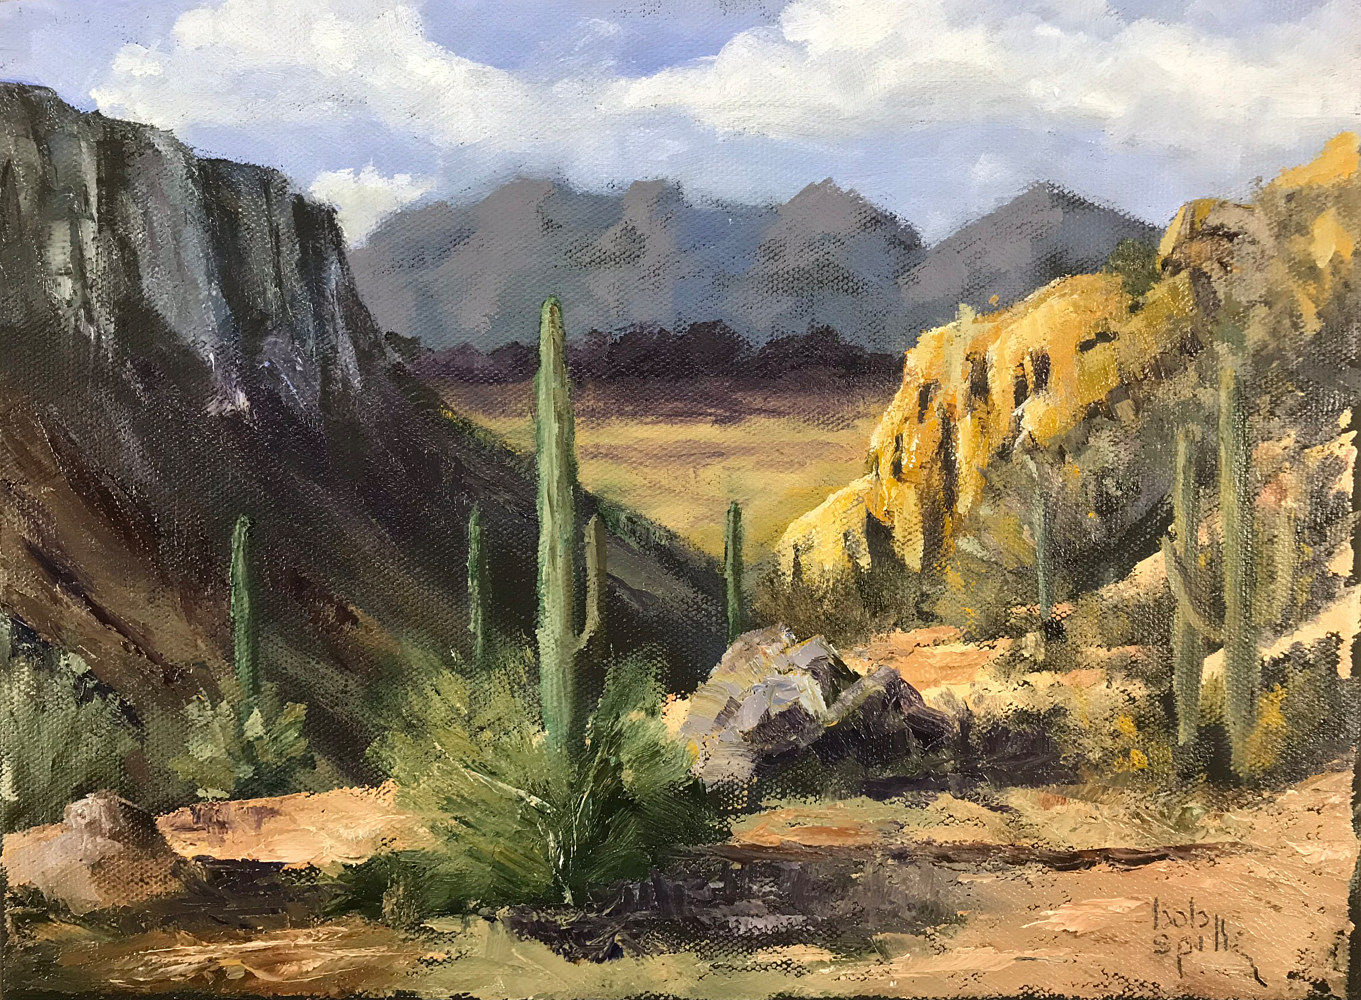 Oil painting Sabino Splendor by Bob Spille